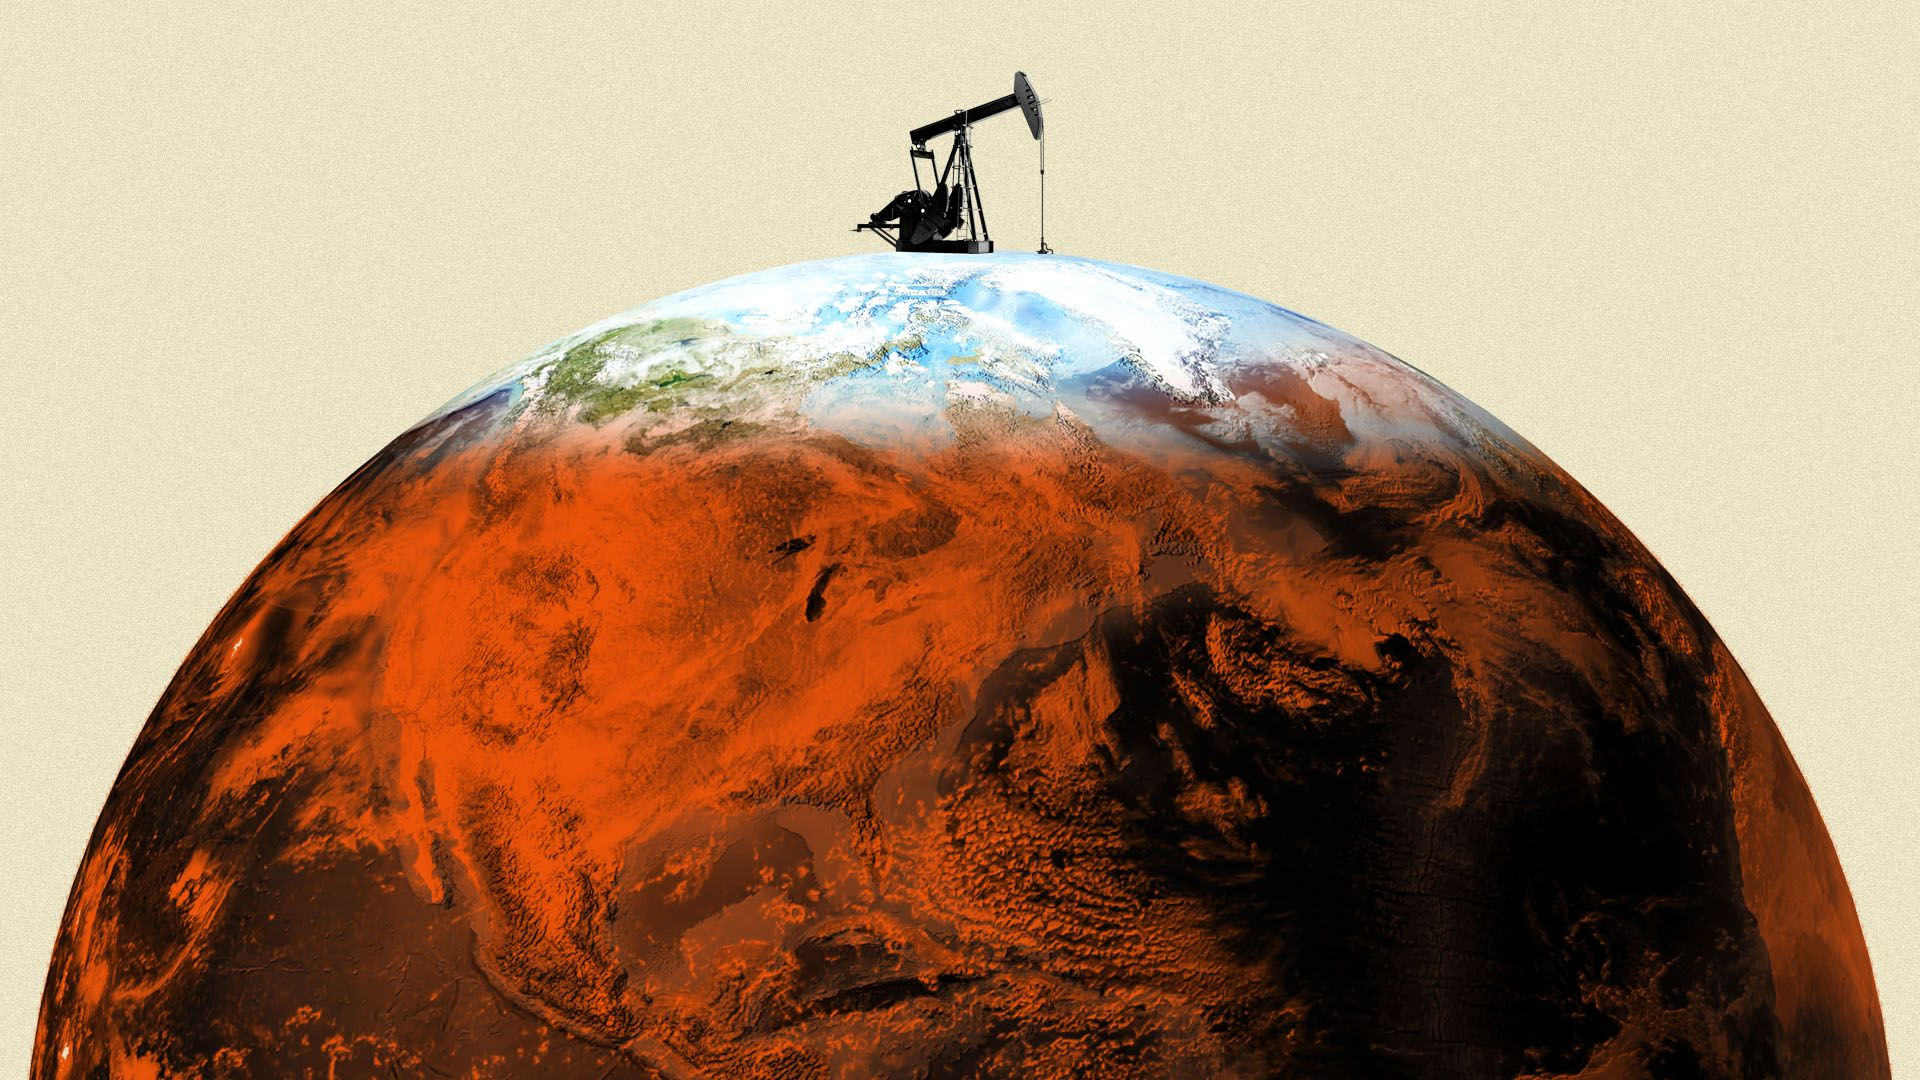 Illustration of a tiny natural gas rig on top of a warming planet